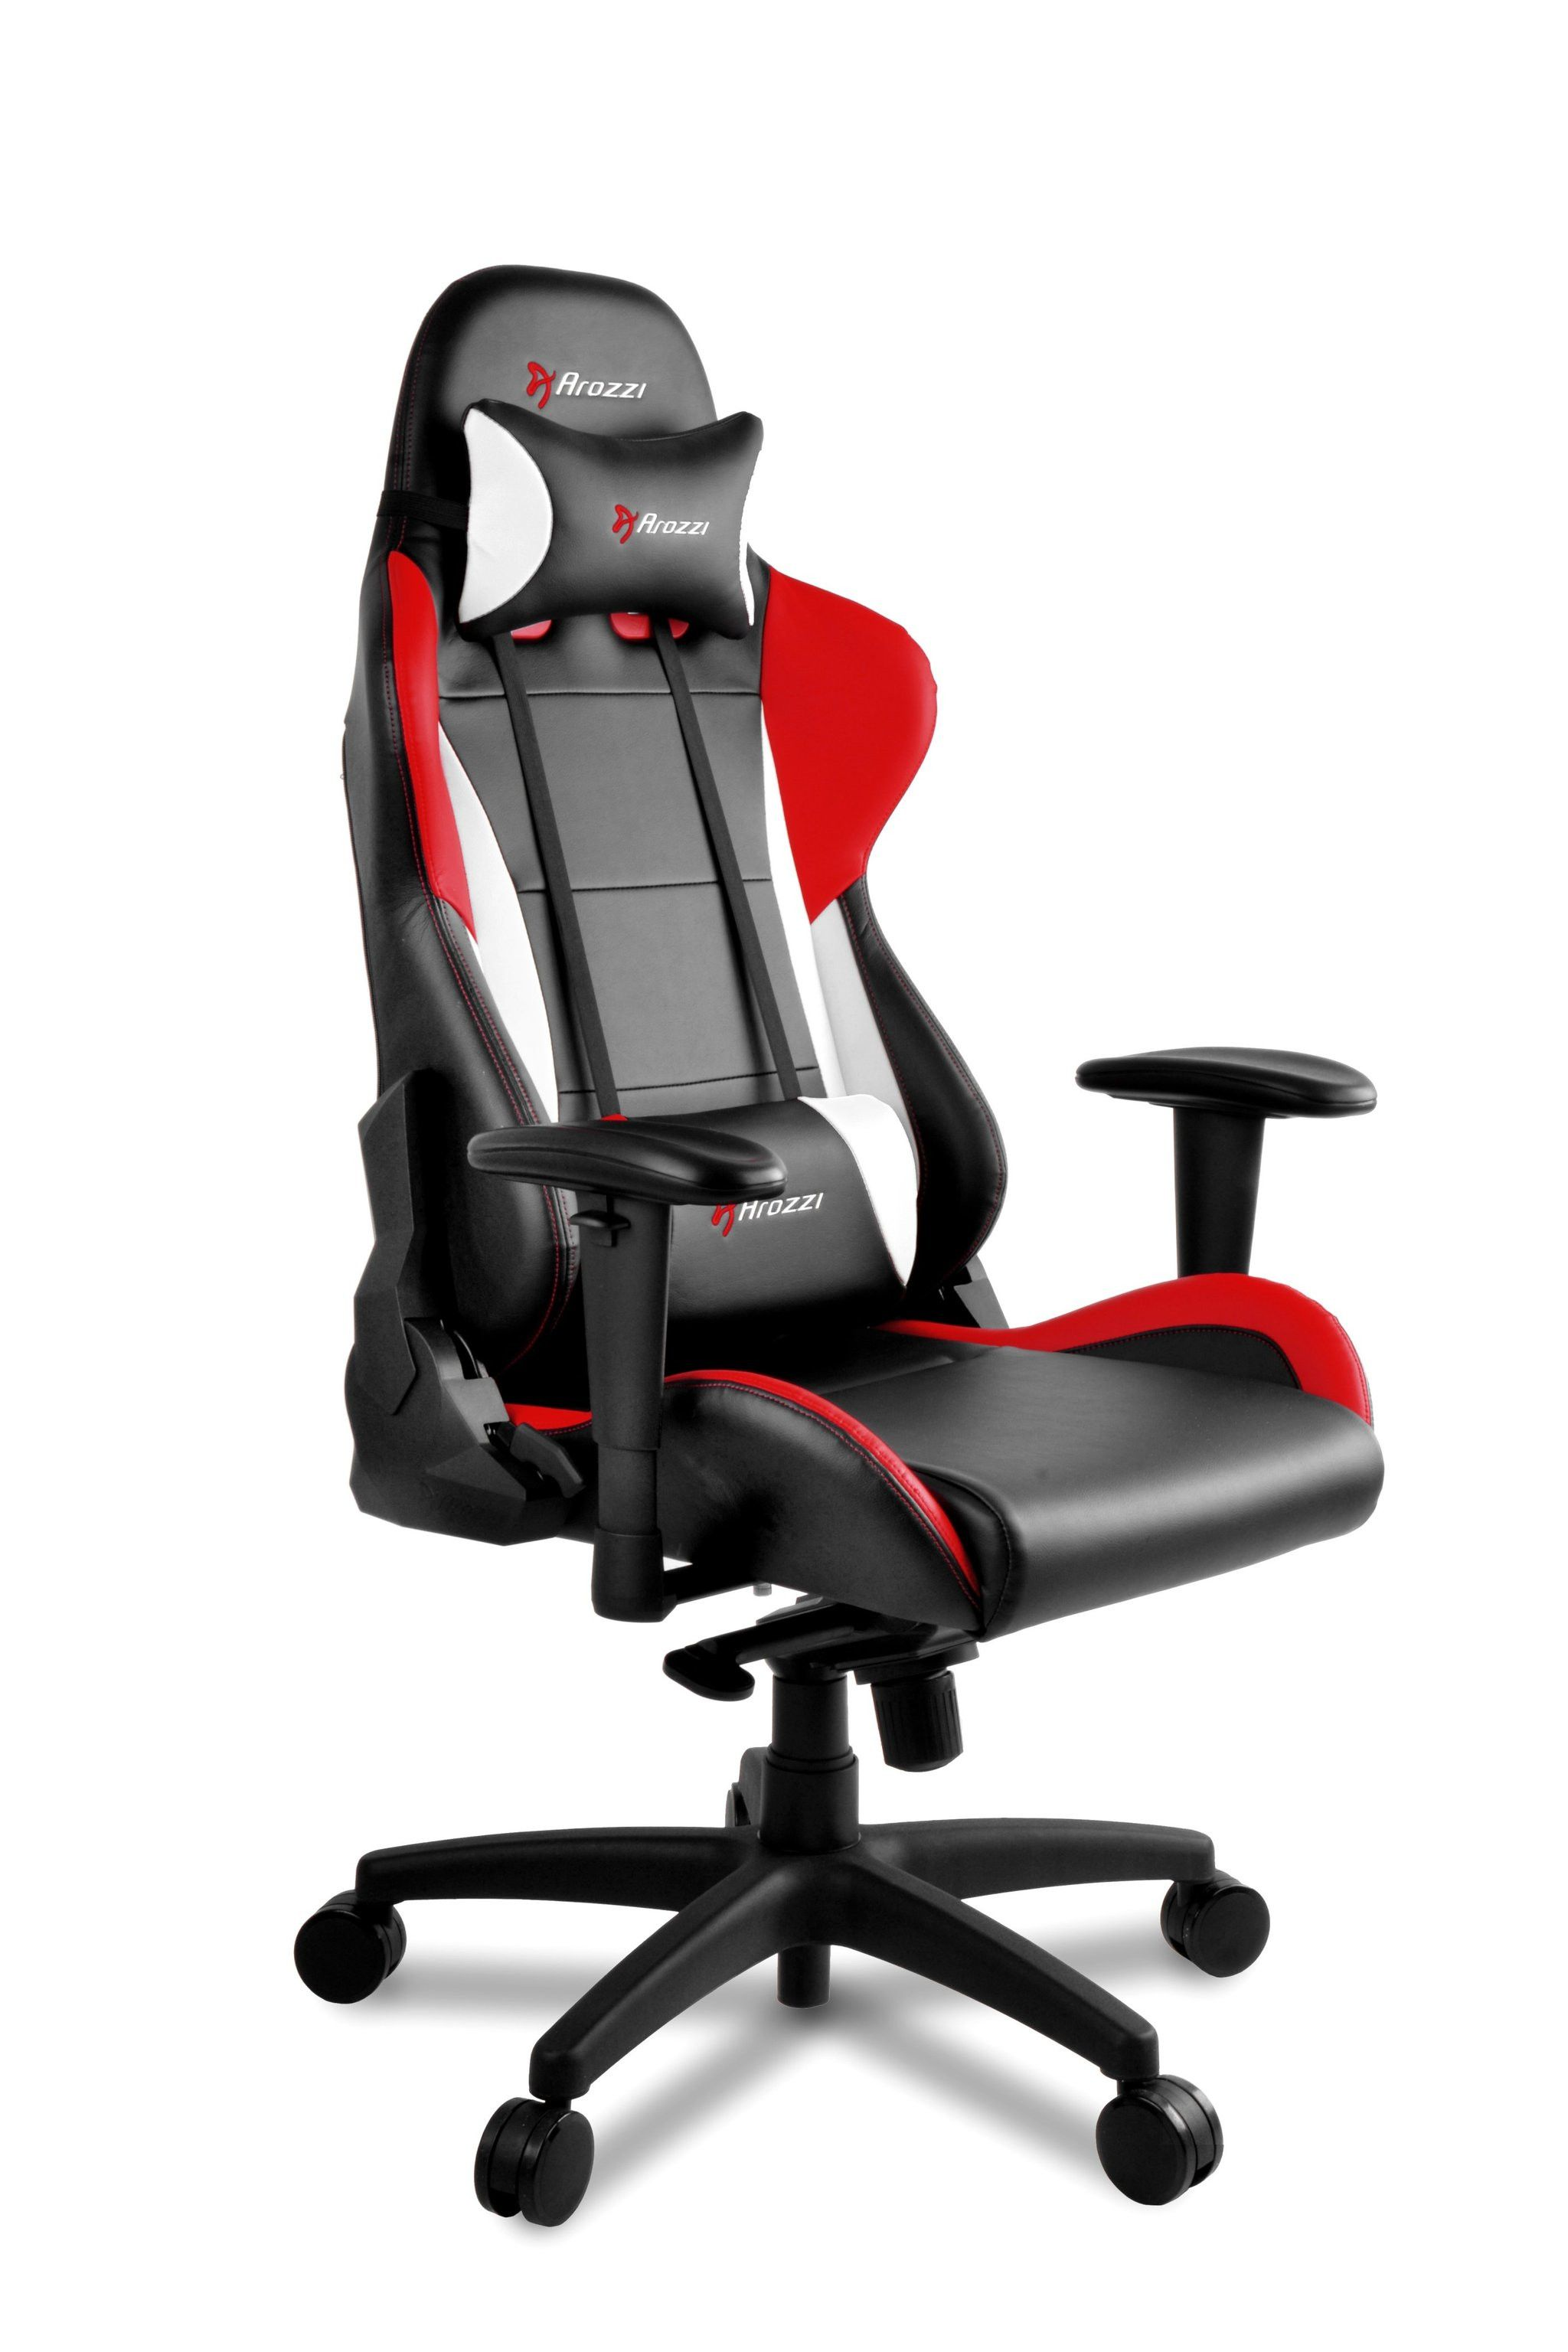 39 Unique Gaming Racing Chair Gaming Chair Chair Racing Chair